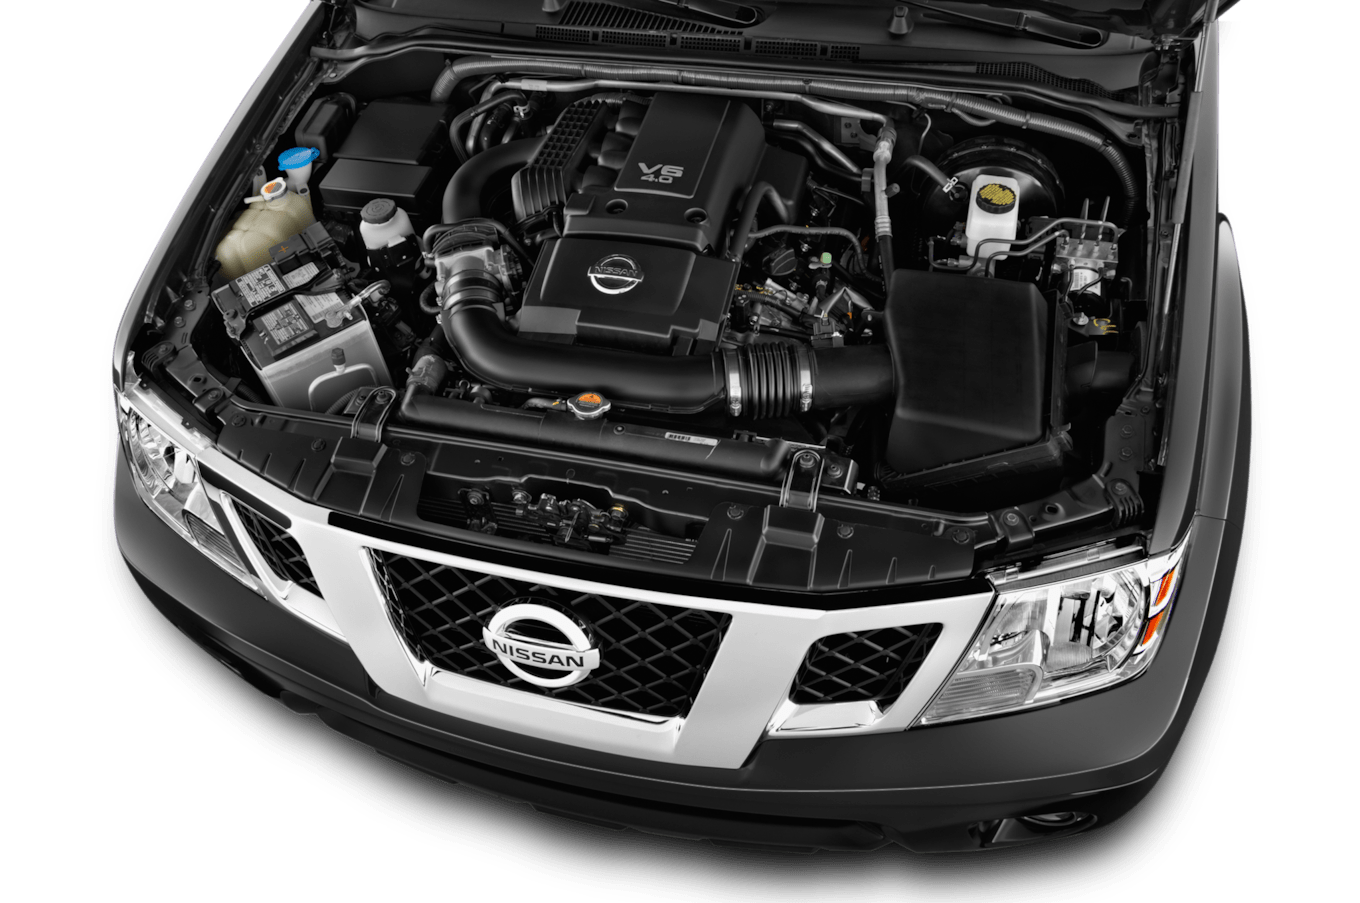 2016 nissan frontier wiring diagram a union b complement venn 2015 v6 engine of auto